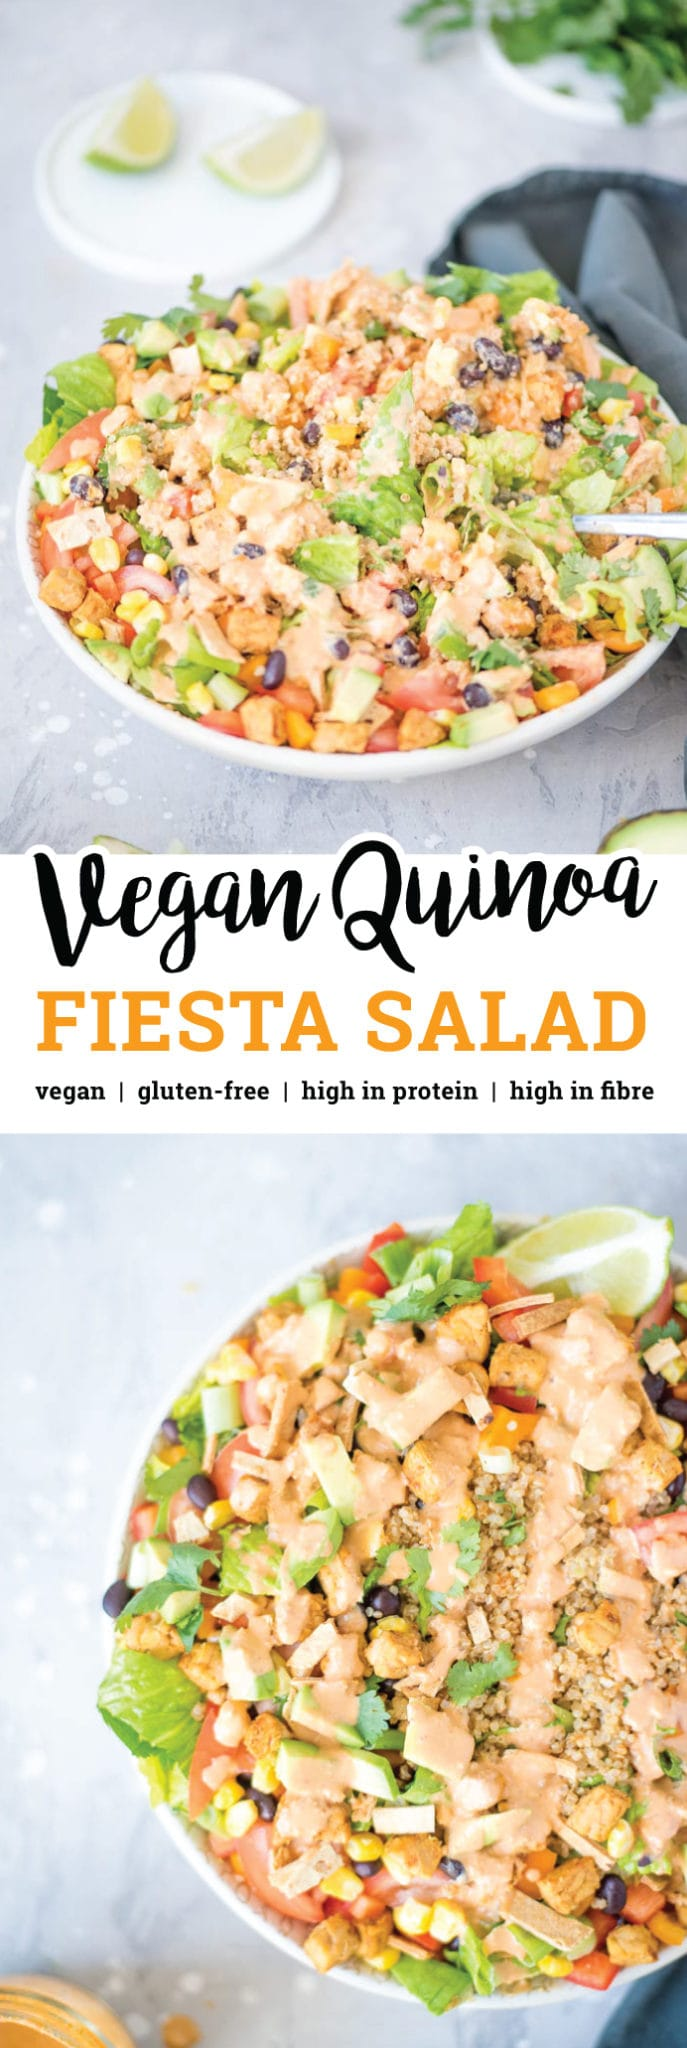 This Vegan Quinoa Fiesta Salad features healthy ingredients like black beans, chipotle sauce, corn, bell peppers, green onion, crushed tortilla chips, shredded lettuce, tomato, tempeh and avocado. This recipe is gluten-free, sugar-free, oil-free and high in protein and fibre.